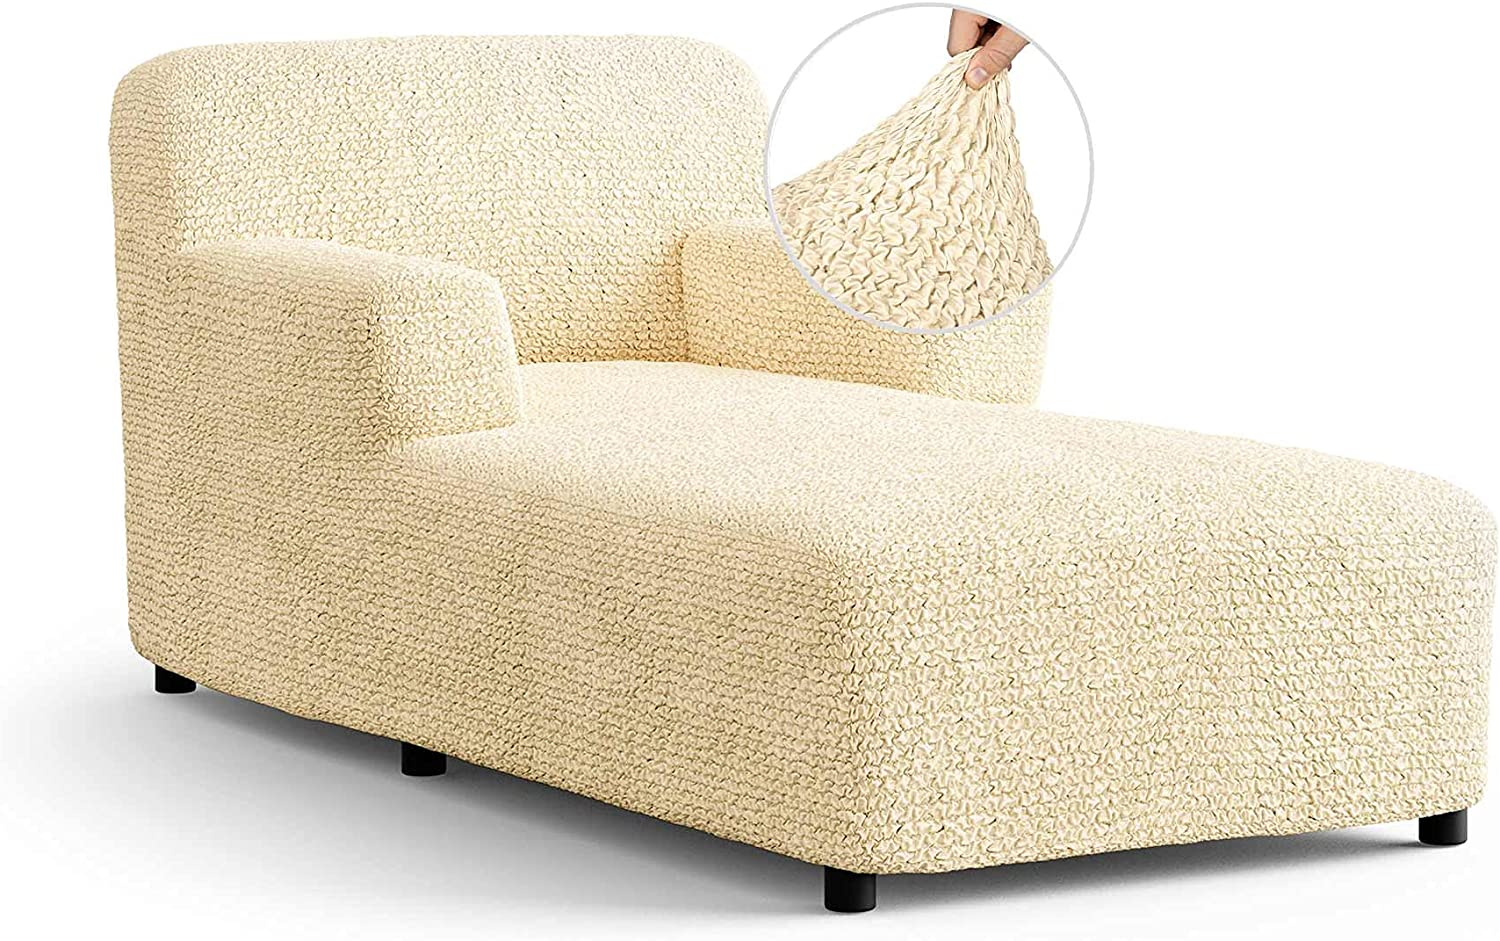 Chaise Lounge Cover - Lounge Sofa Slipcover- Soft Polyester Fabric Slipcovers - 1-Piece Form Fit Stretch Furniture Slipcover - Microfibra Collection - Vanilla (Chaise Lounge)